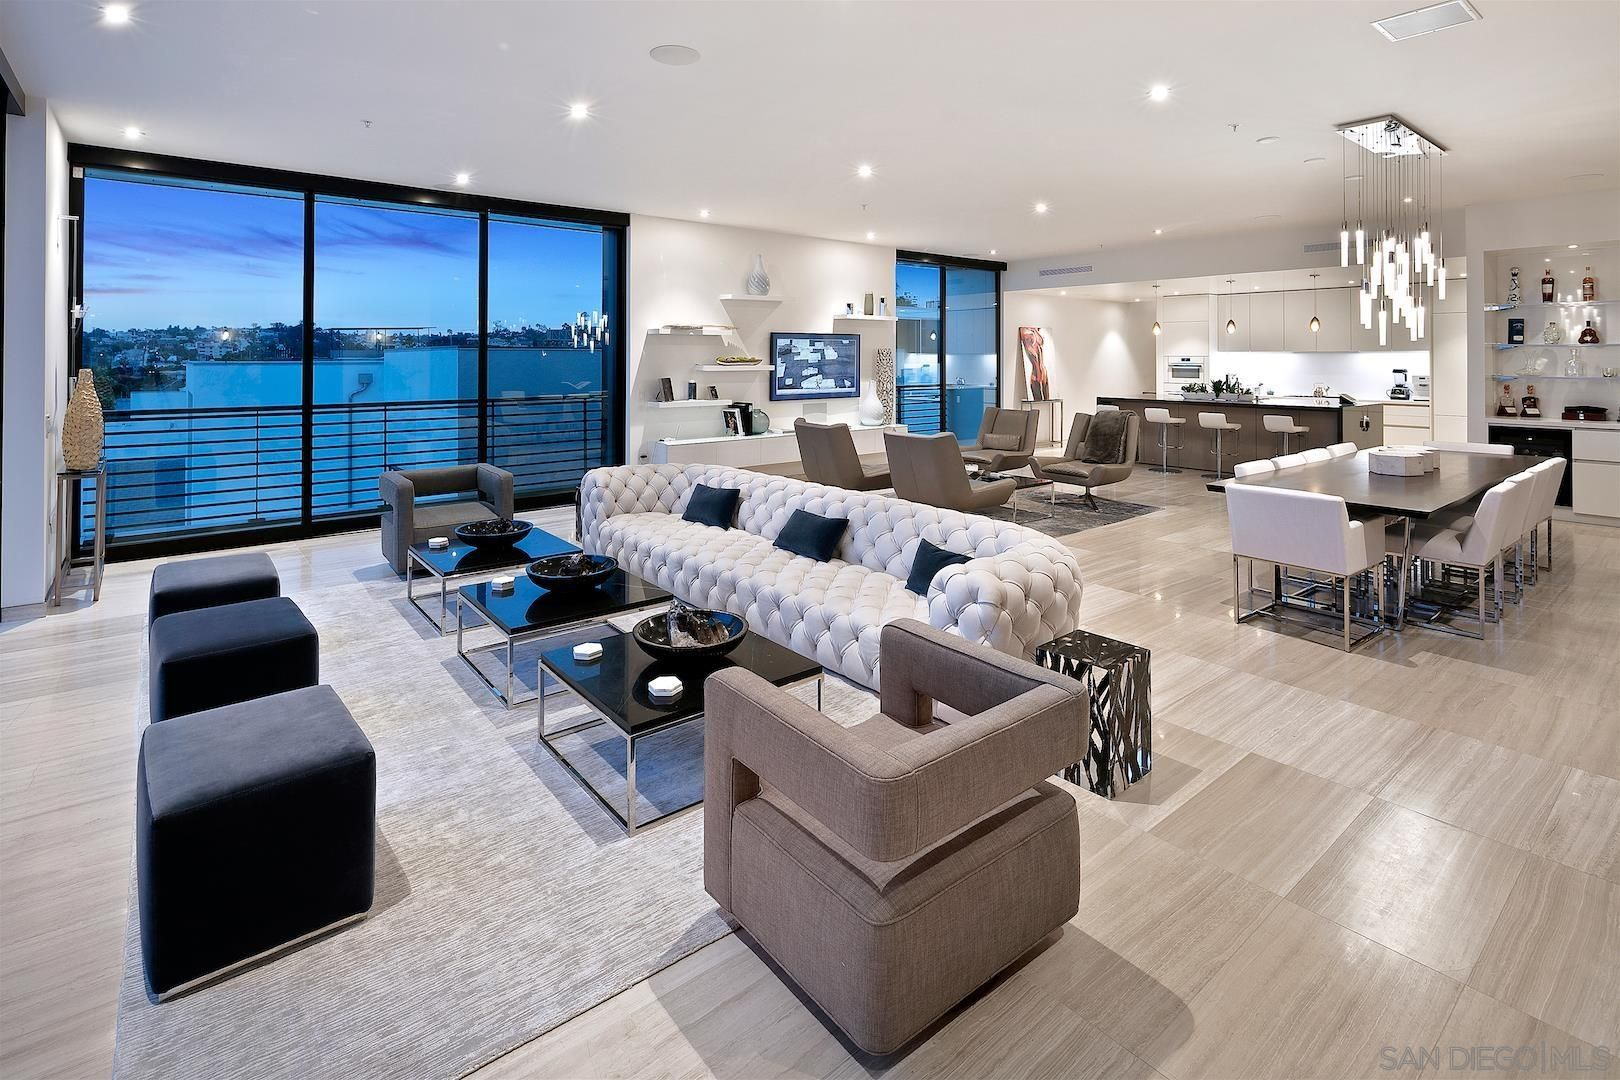 Main Photo: DOWNTOWN Condo for sale : 3 bedrooms : 1929 Columbia St - PH #601 in San Diego